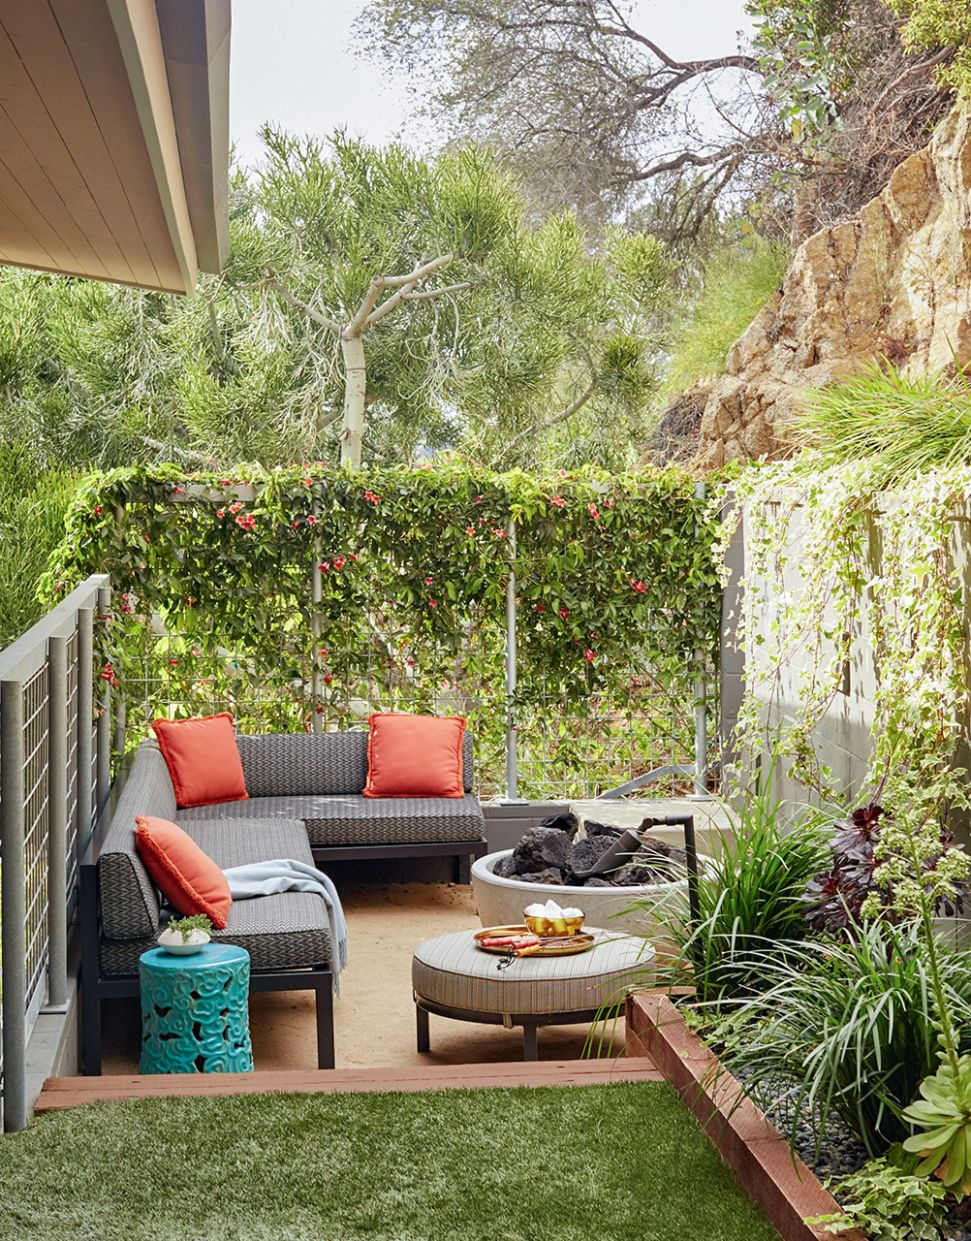 11 Budget-Friendly Backyard Ideas to Create the Ultimate Outdoor ..